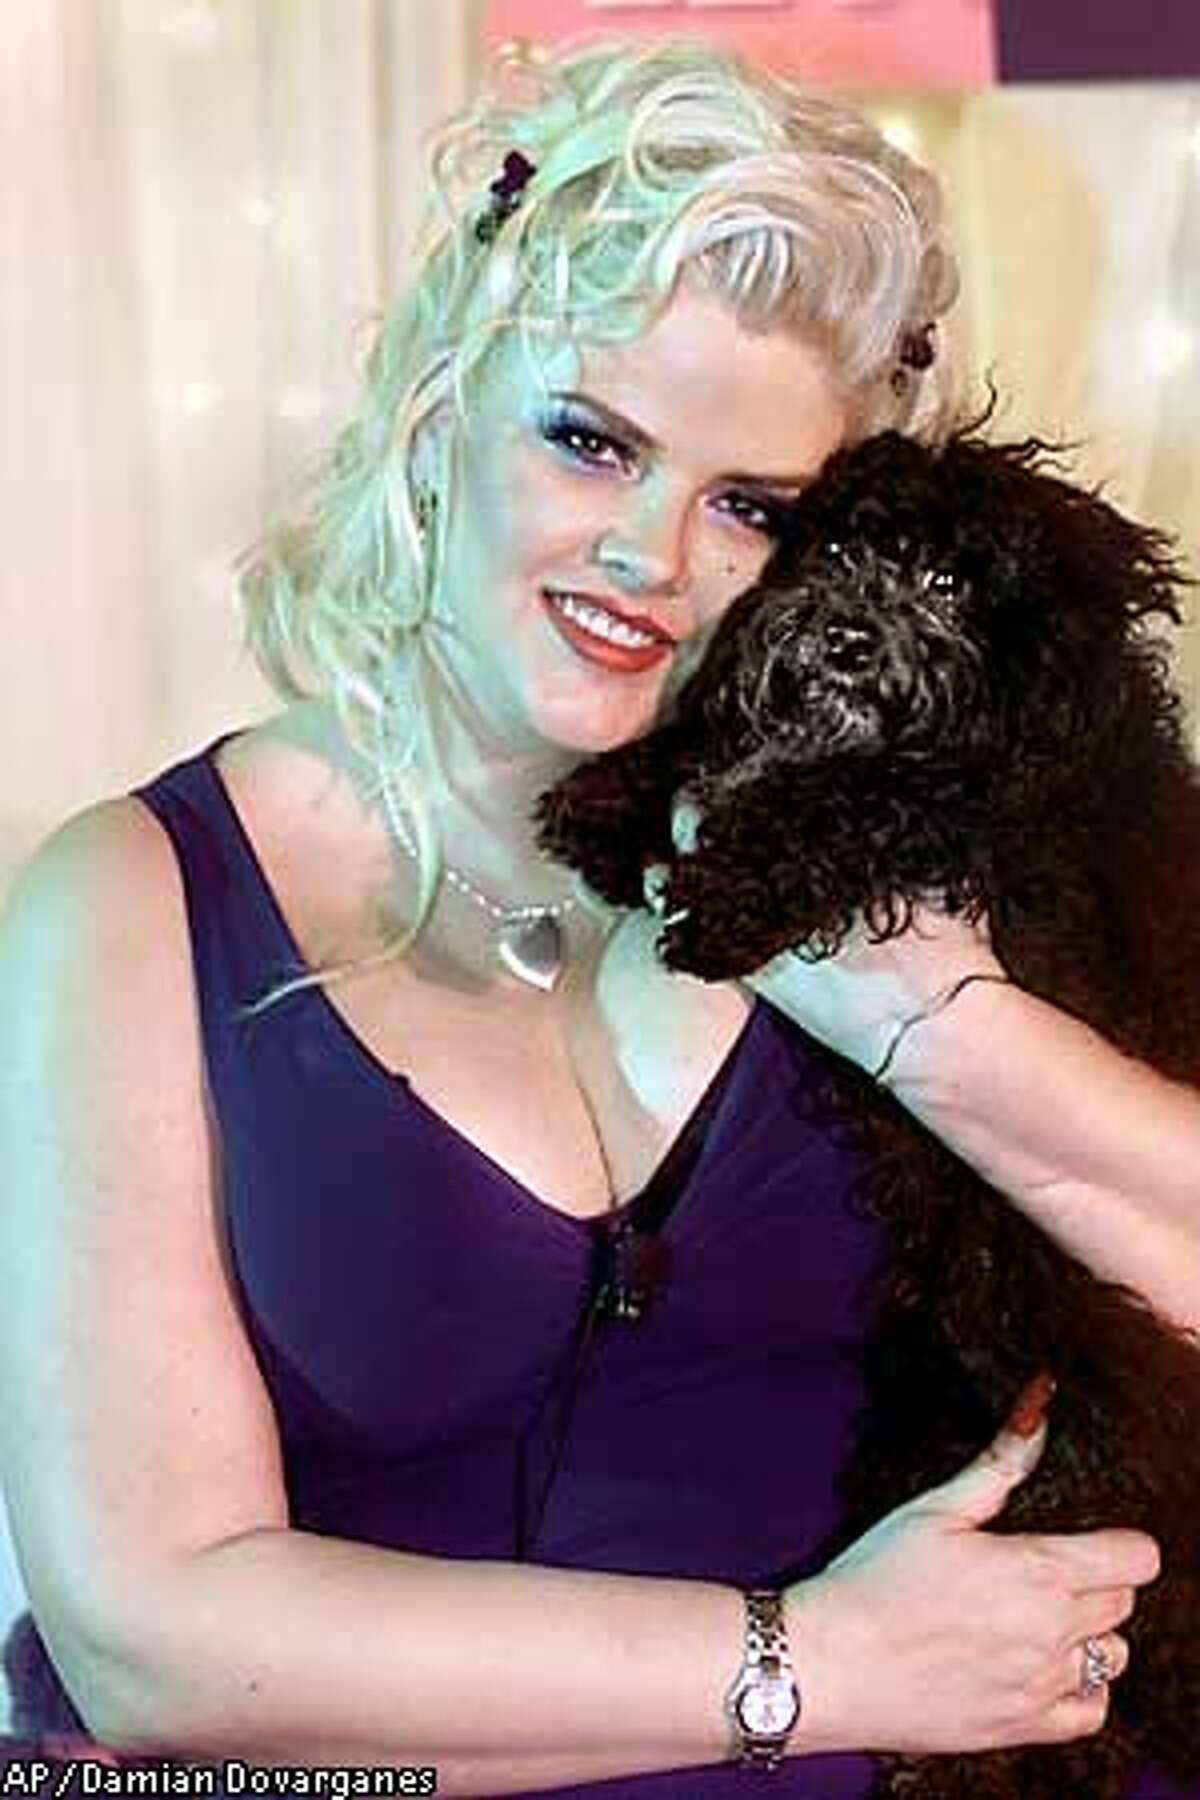 ** RETRANSMITTED FOR IMPROVED TONING **Former model Anna Nicole Smith poses Tuesday, July 9, 2002, with her black toy poodle